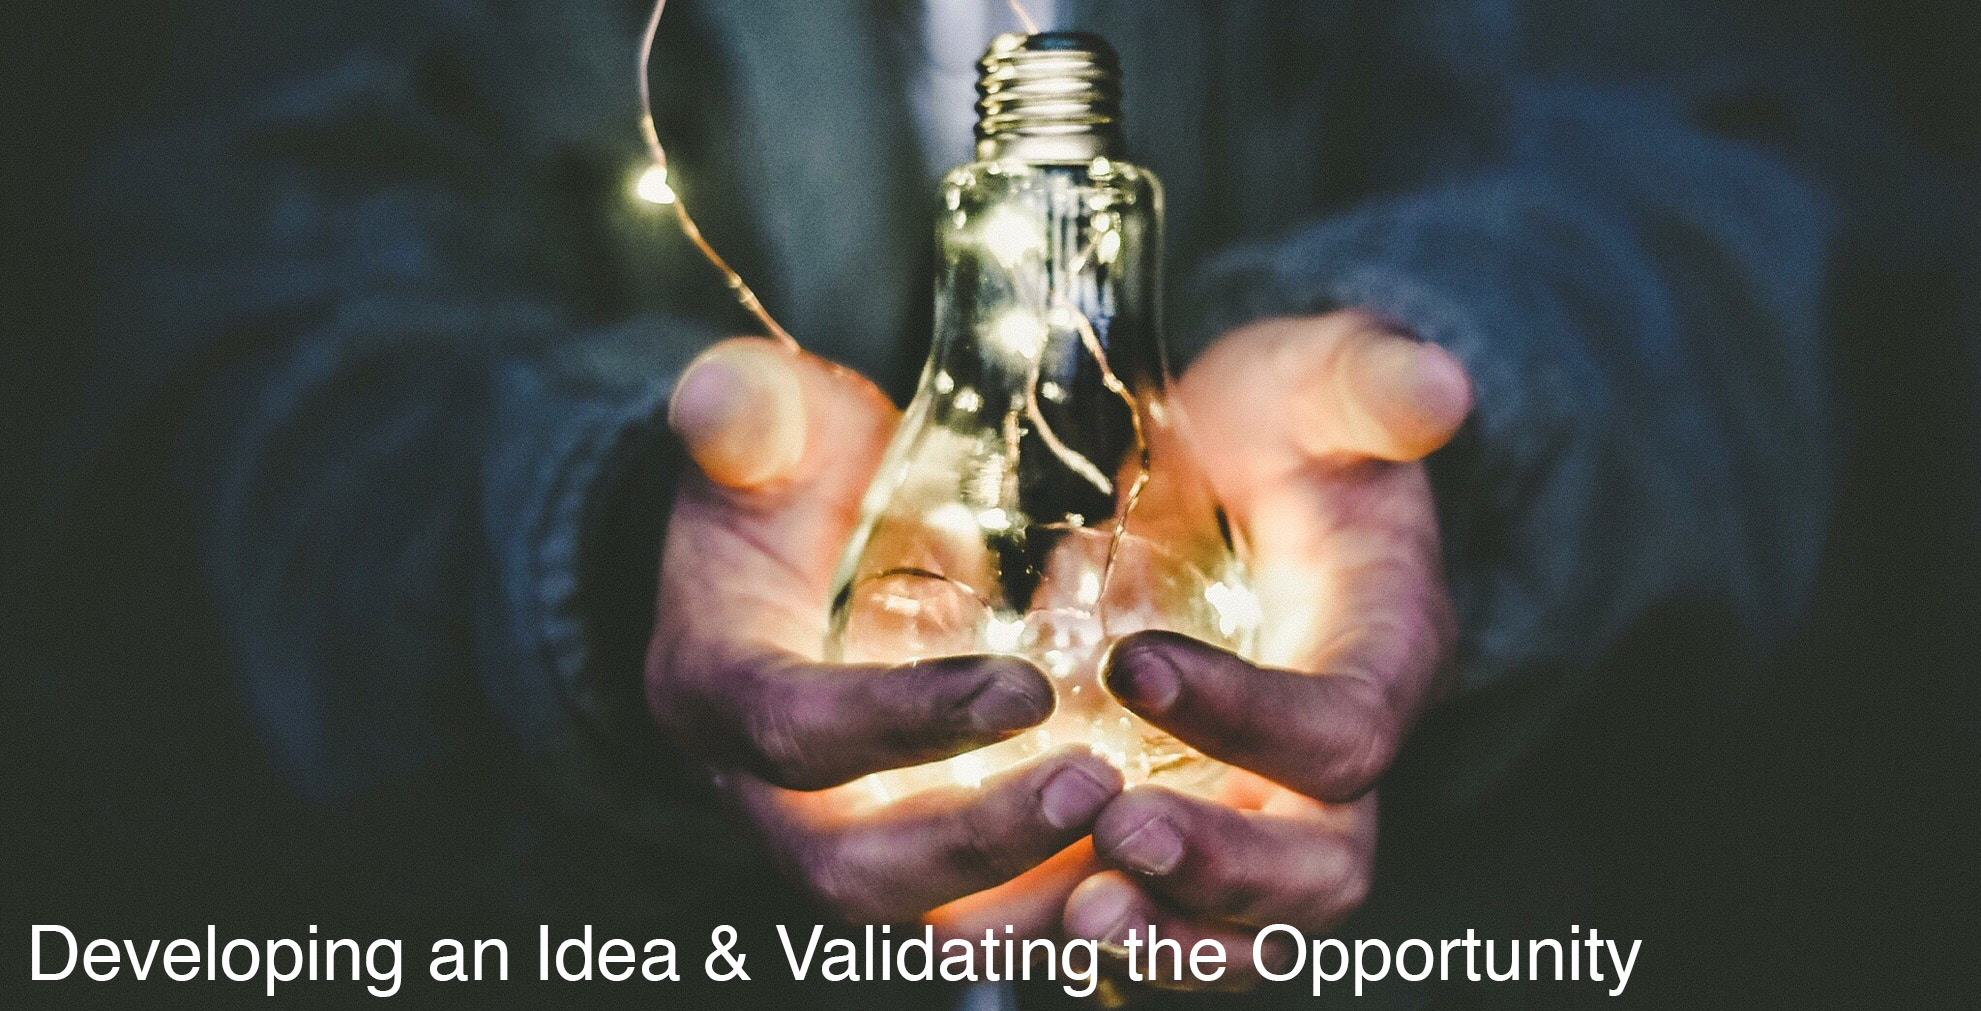 Developing-an-Idea-Validating-the-Opportunity-cyprusinno-cyprus 2